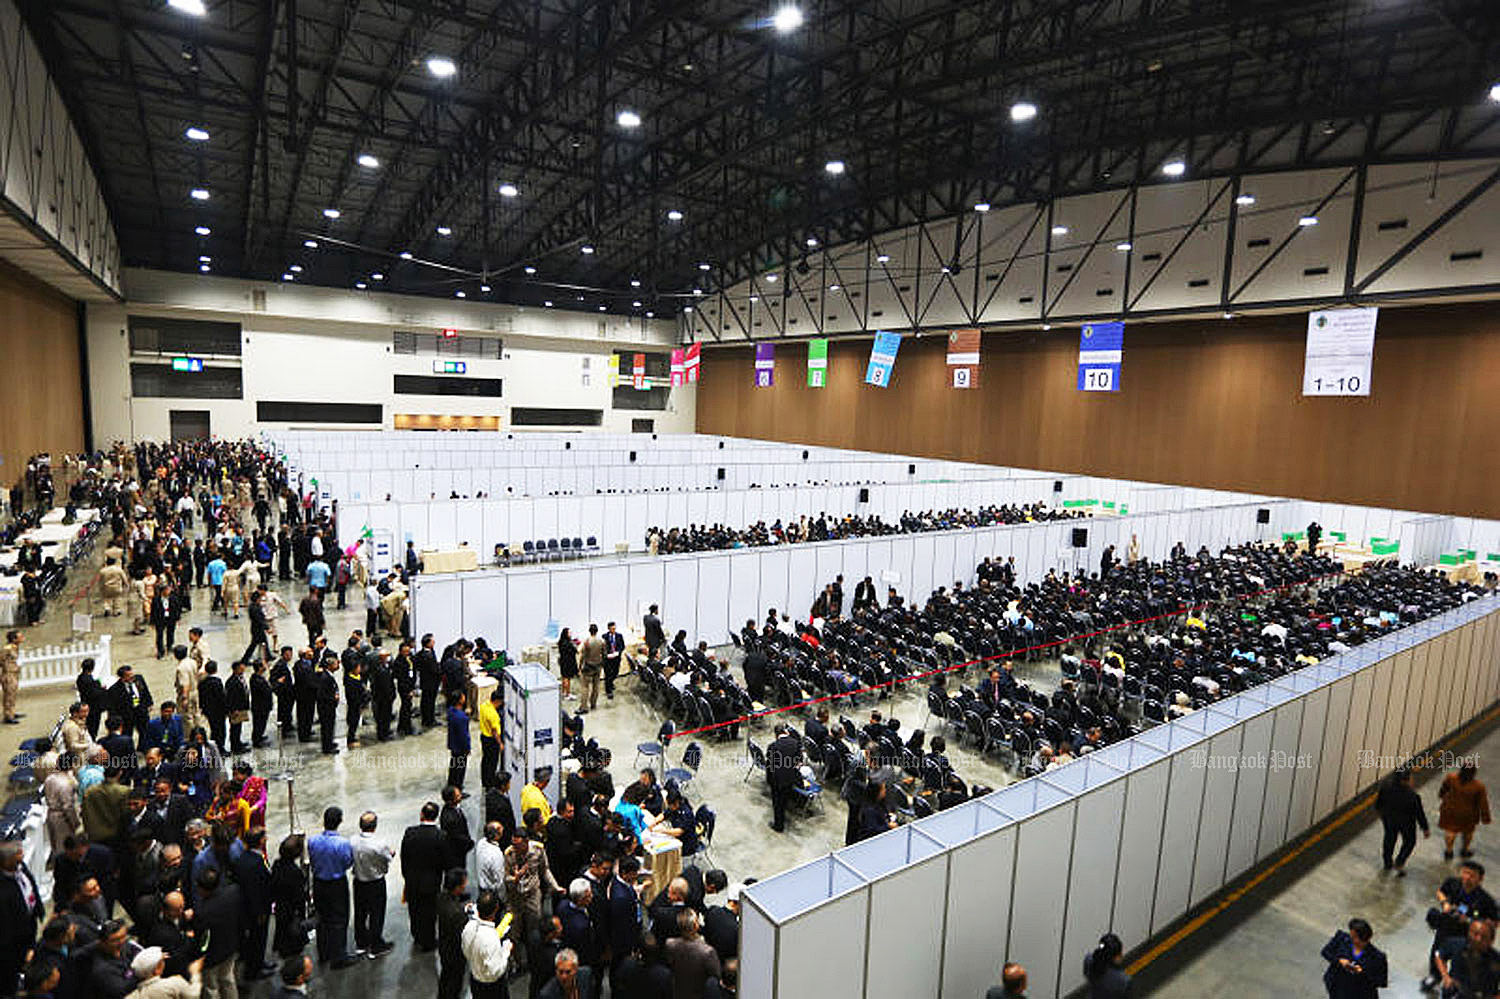 This 2018 photo shows the senator selection process at Impact Muang Thong Thani in Nonthaburi province. Over 2,700 candidates were shortlisted to 200 for the junta to handpick to 50.